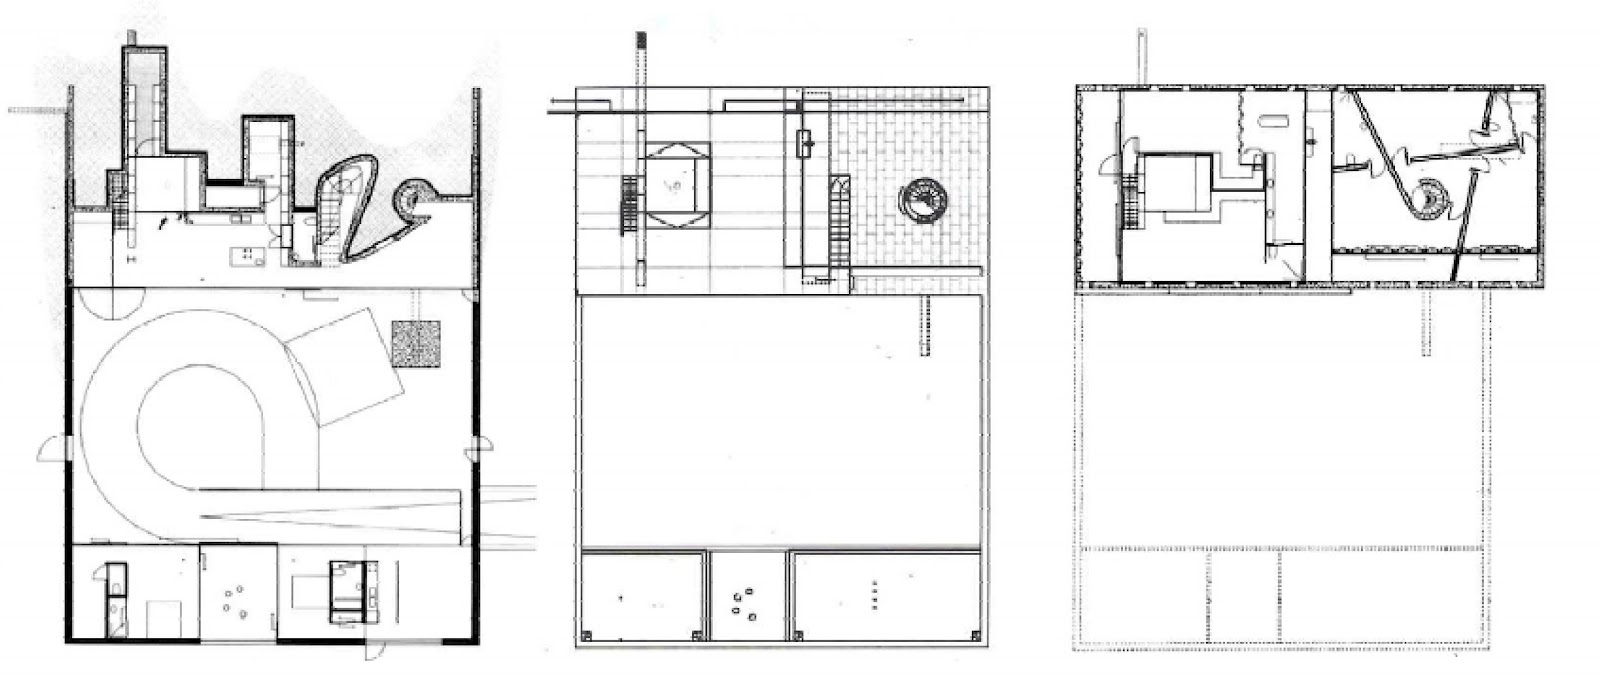 Evan shen arch1201 week 4 analysis of bordeaux house - Maison de l architecture bordeaux ...